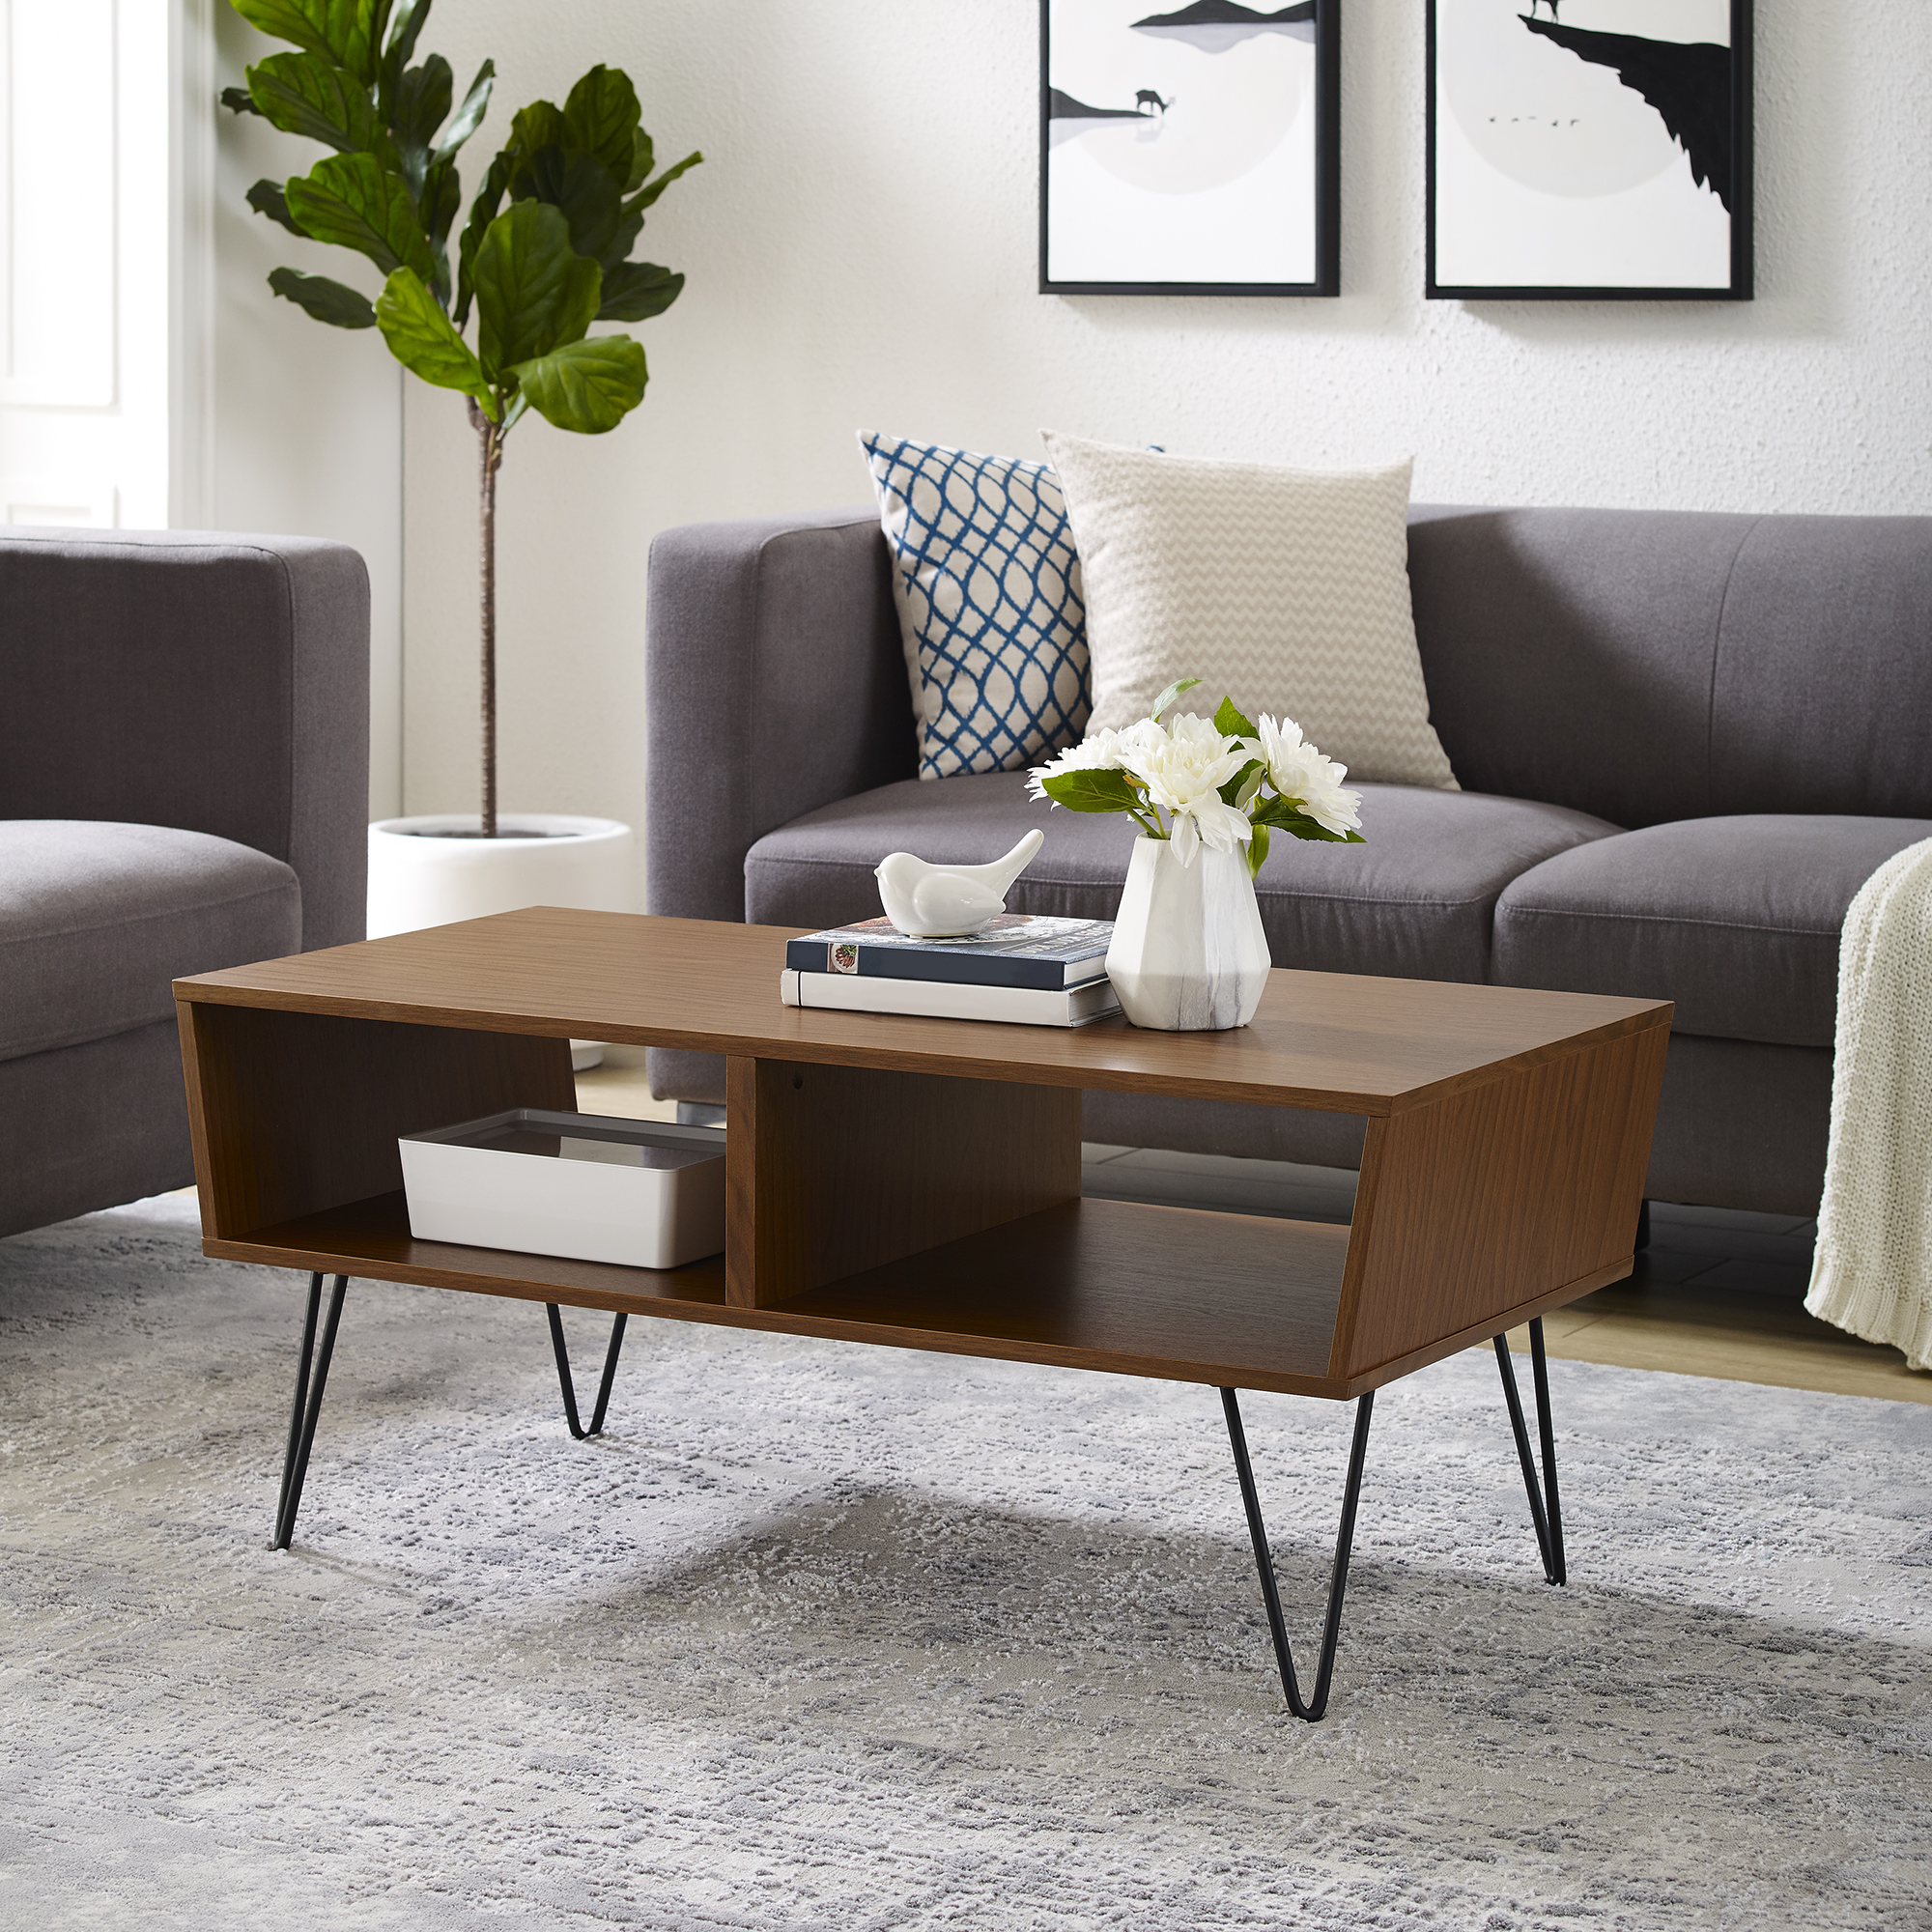 "Manor Park 42"" Mid-Century Angled Coffee Table with Hairpin Legs - Acorn"